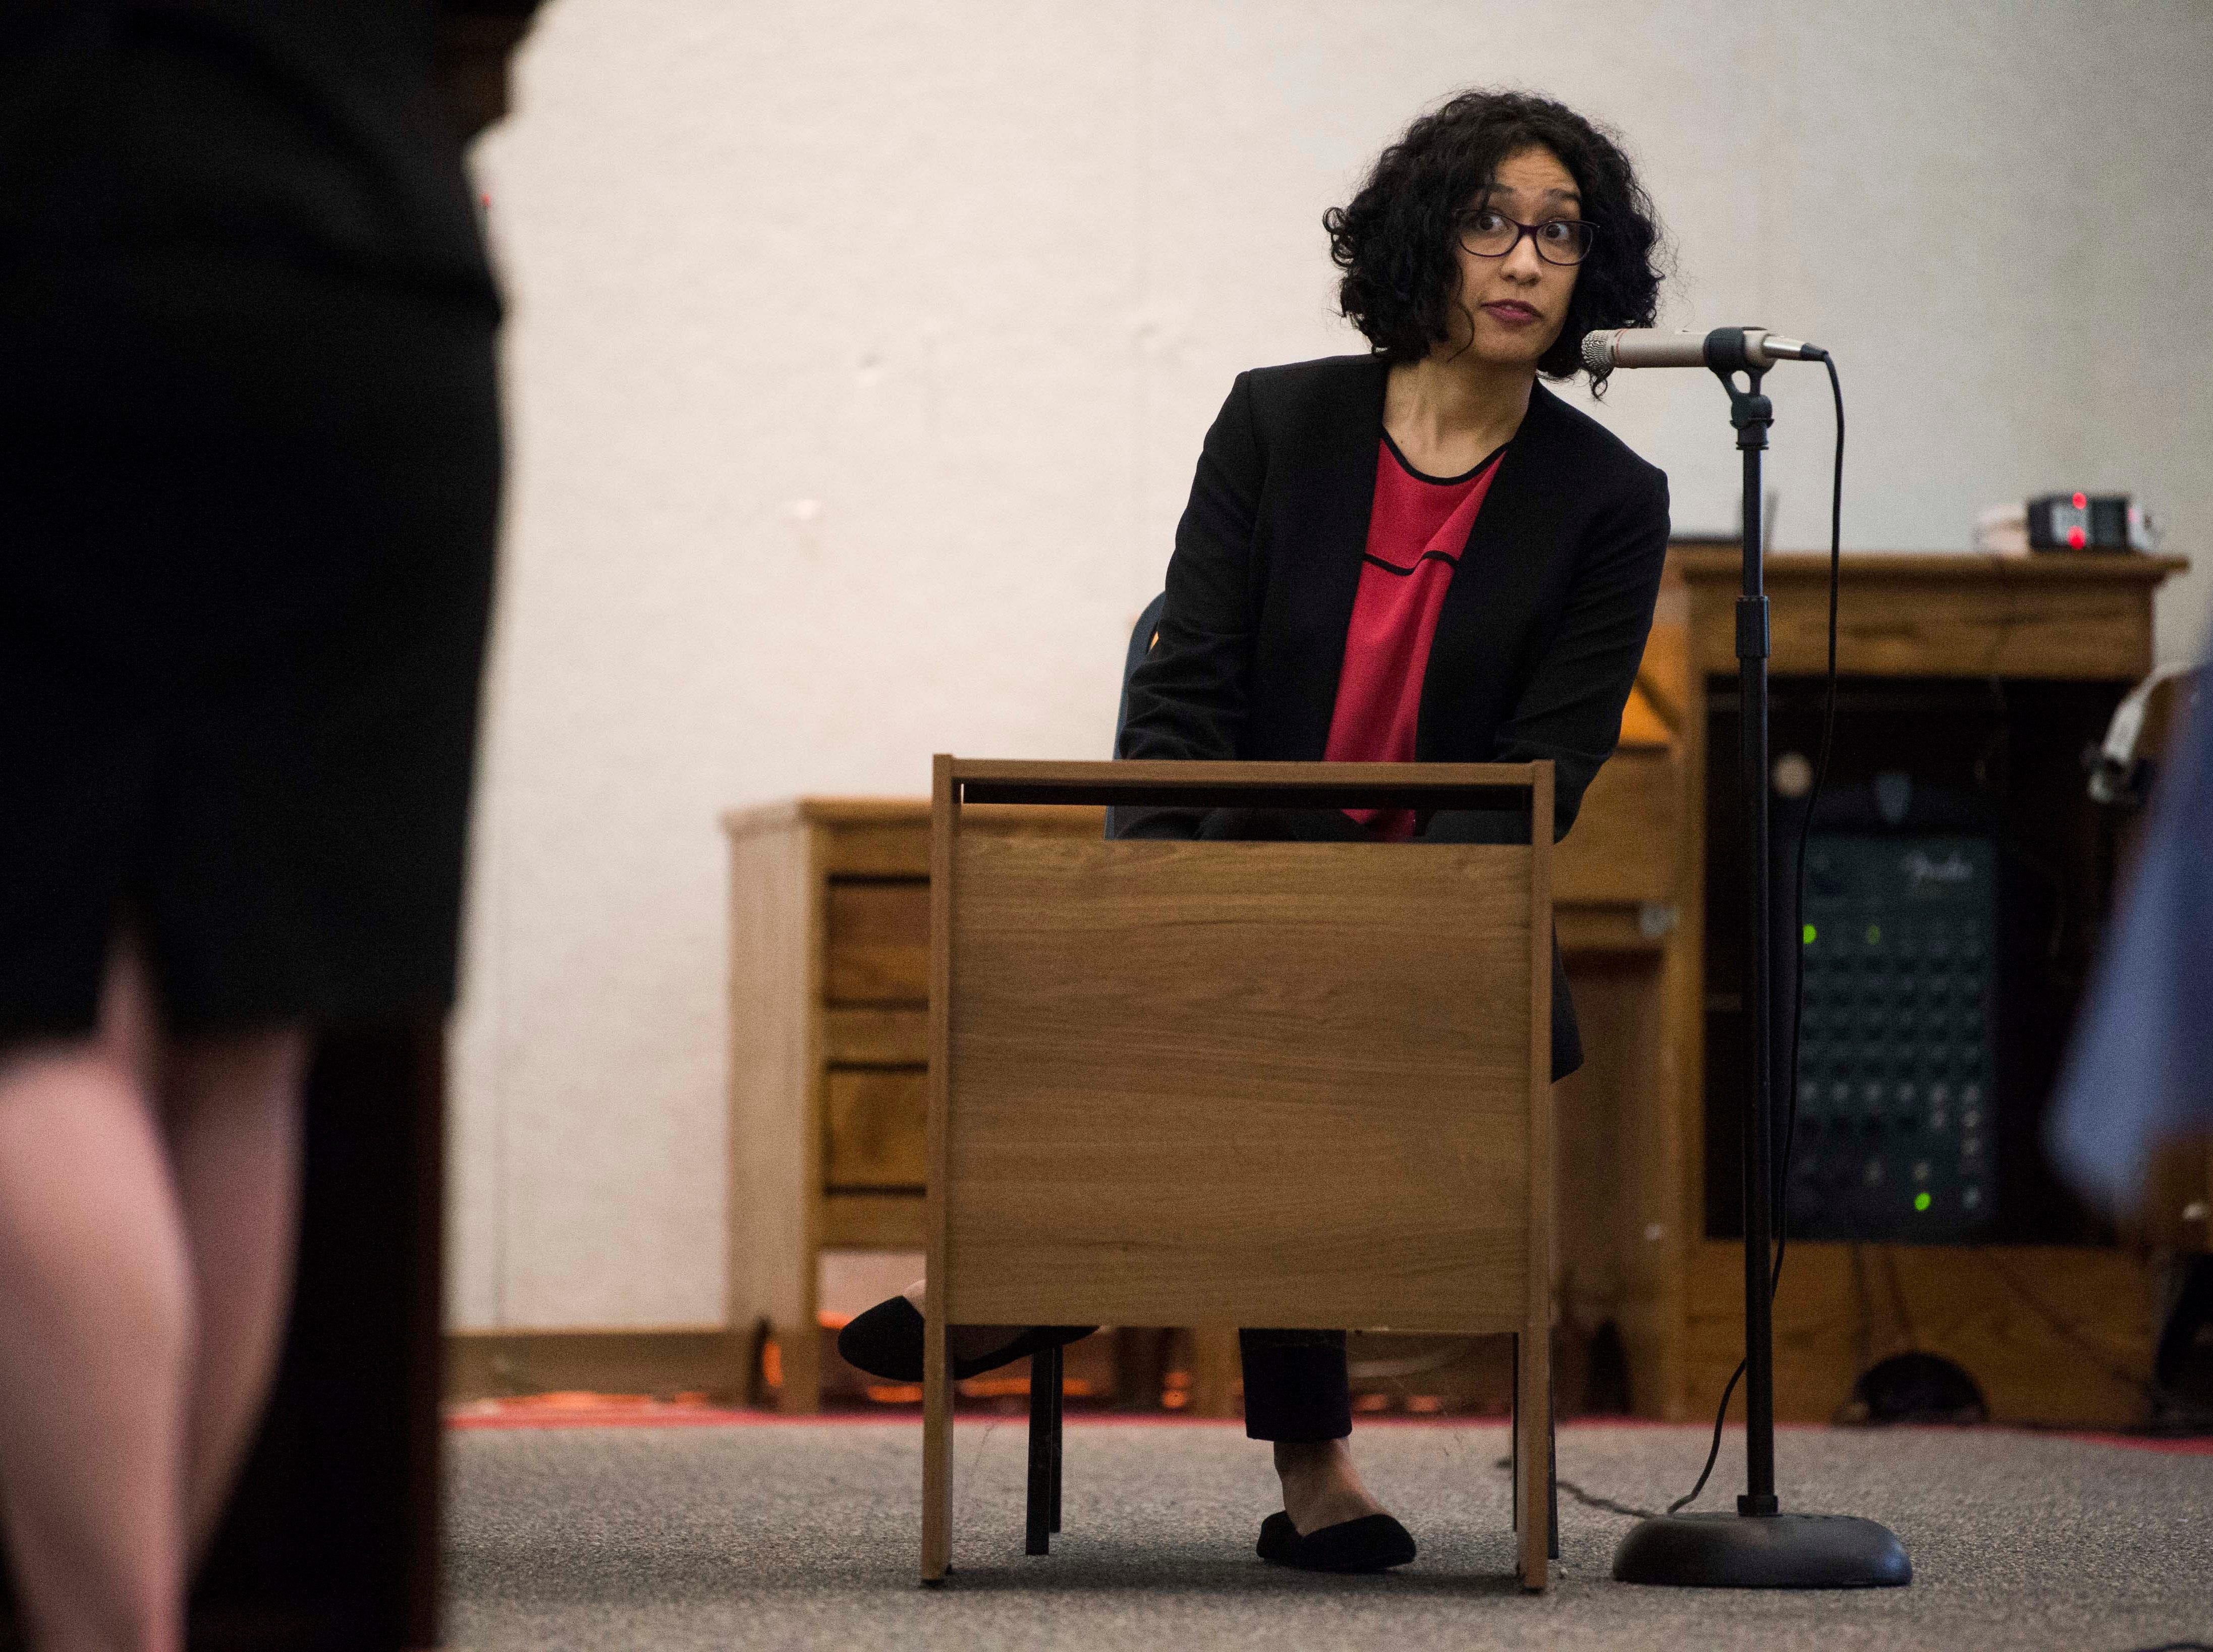 Arlene Amarante provides testimony during a mock trial of Allies of Knoxville's Immigrant neighbors at St. James Episcopal Church of Knoxville in Knoxville, Saturday, May 11, 2019. The court was part of the group's efforts to raise awareness about the negative effects of Knox County's 287(g) program, the only program of its kind in the state, which trains local officers to enforce federal immigration laws.